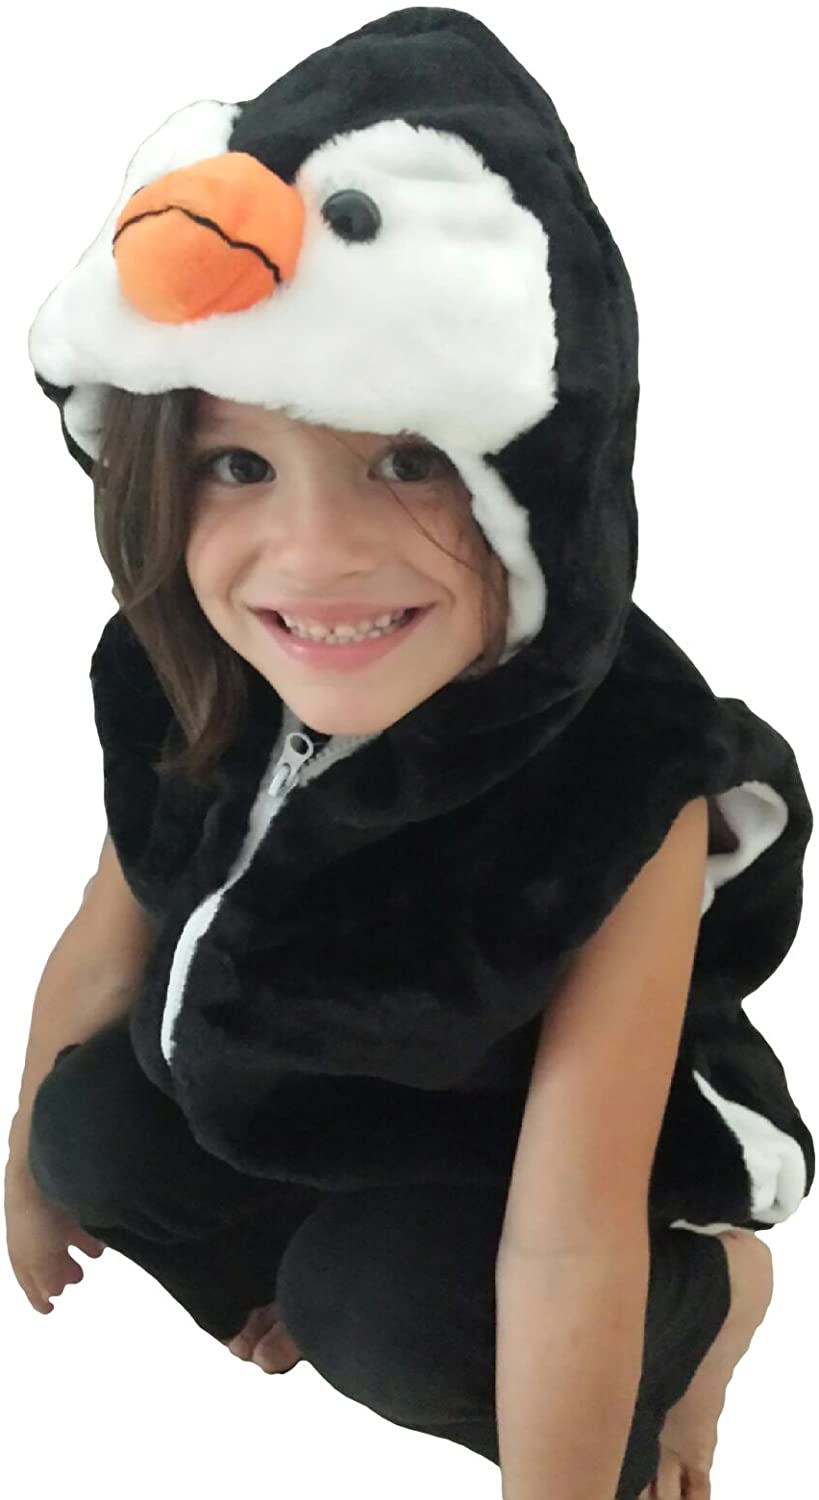 Fashion Vest with Animal Hoodie for Kids - Halloween Dress Up Costume - Boy and Girl Pretend Play (Small, Penguin)